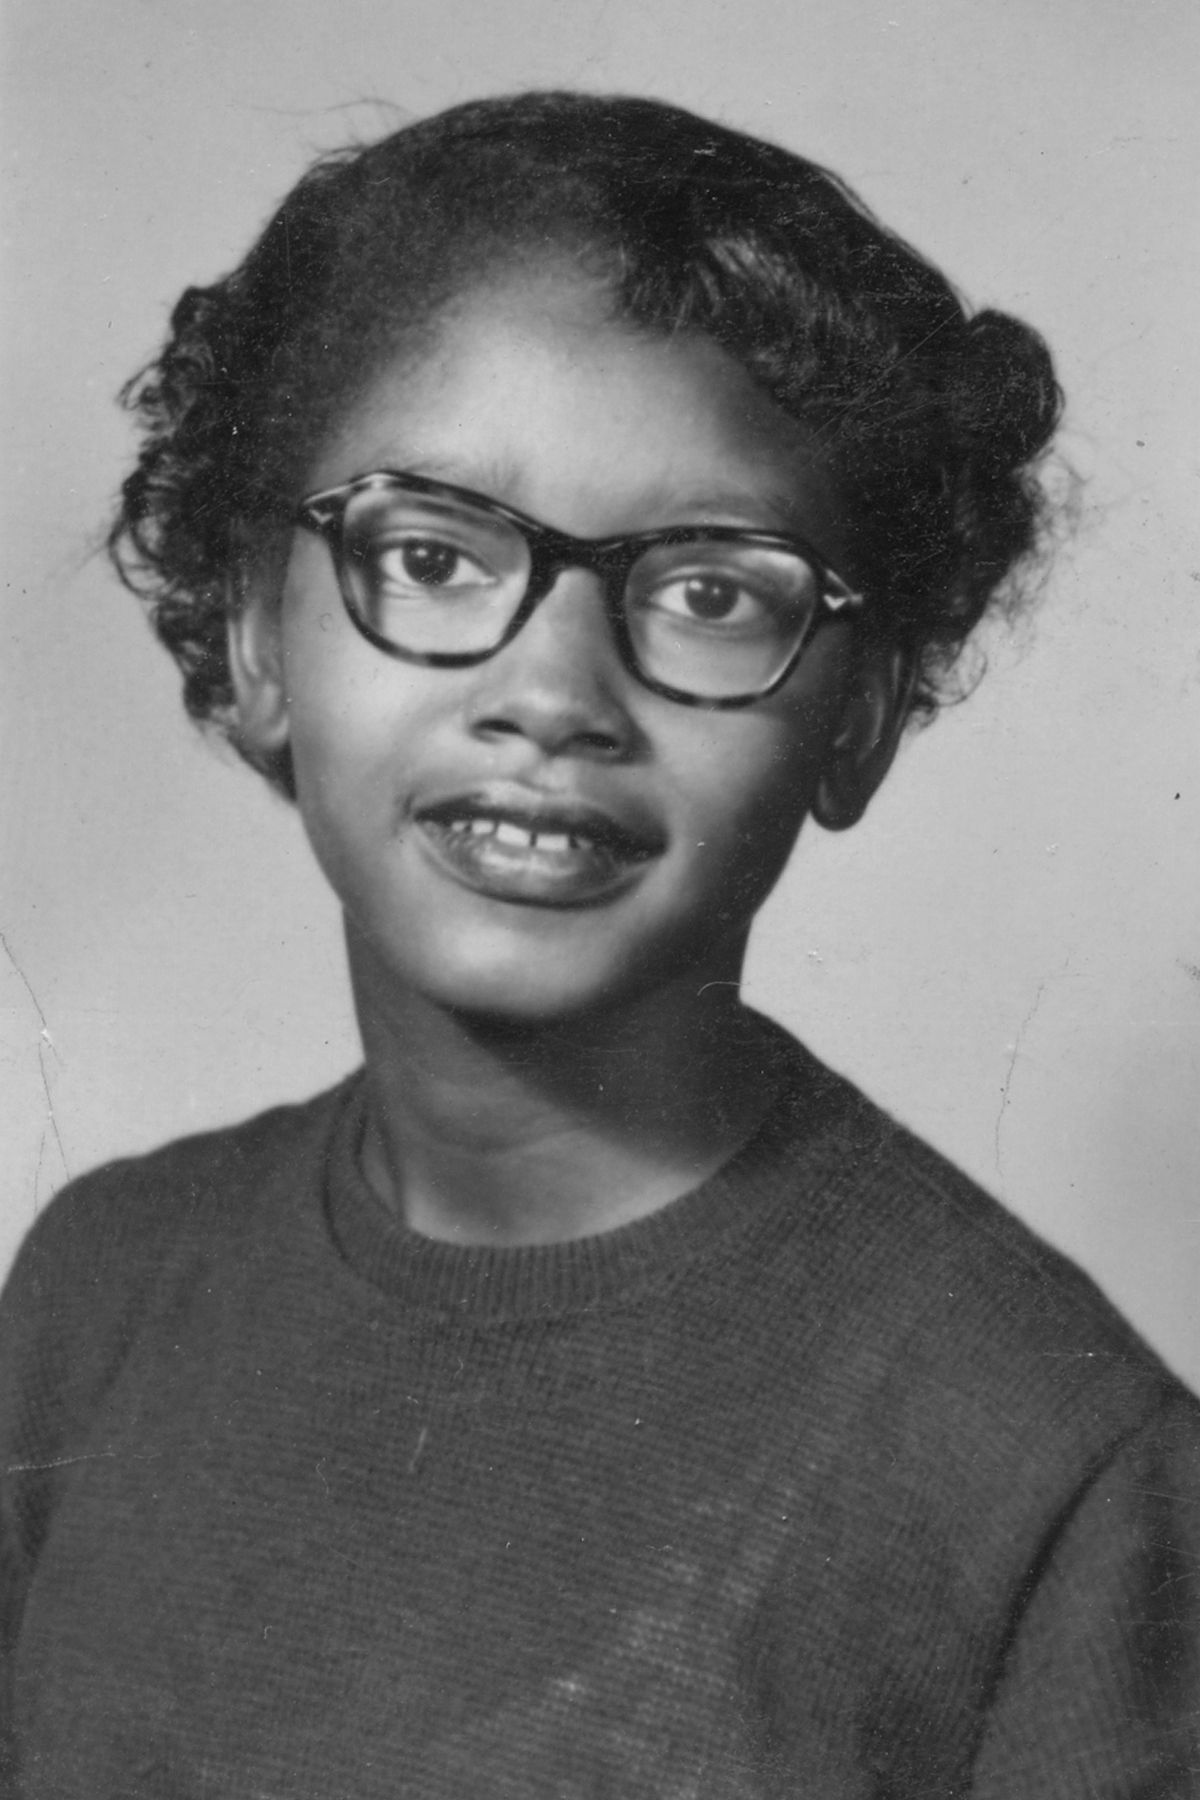 Caption: Claudette Colvin.